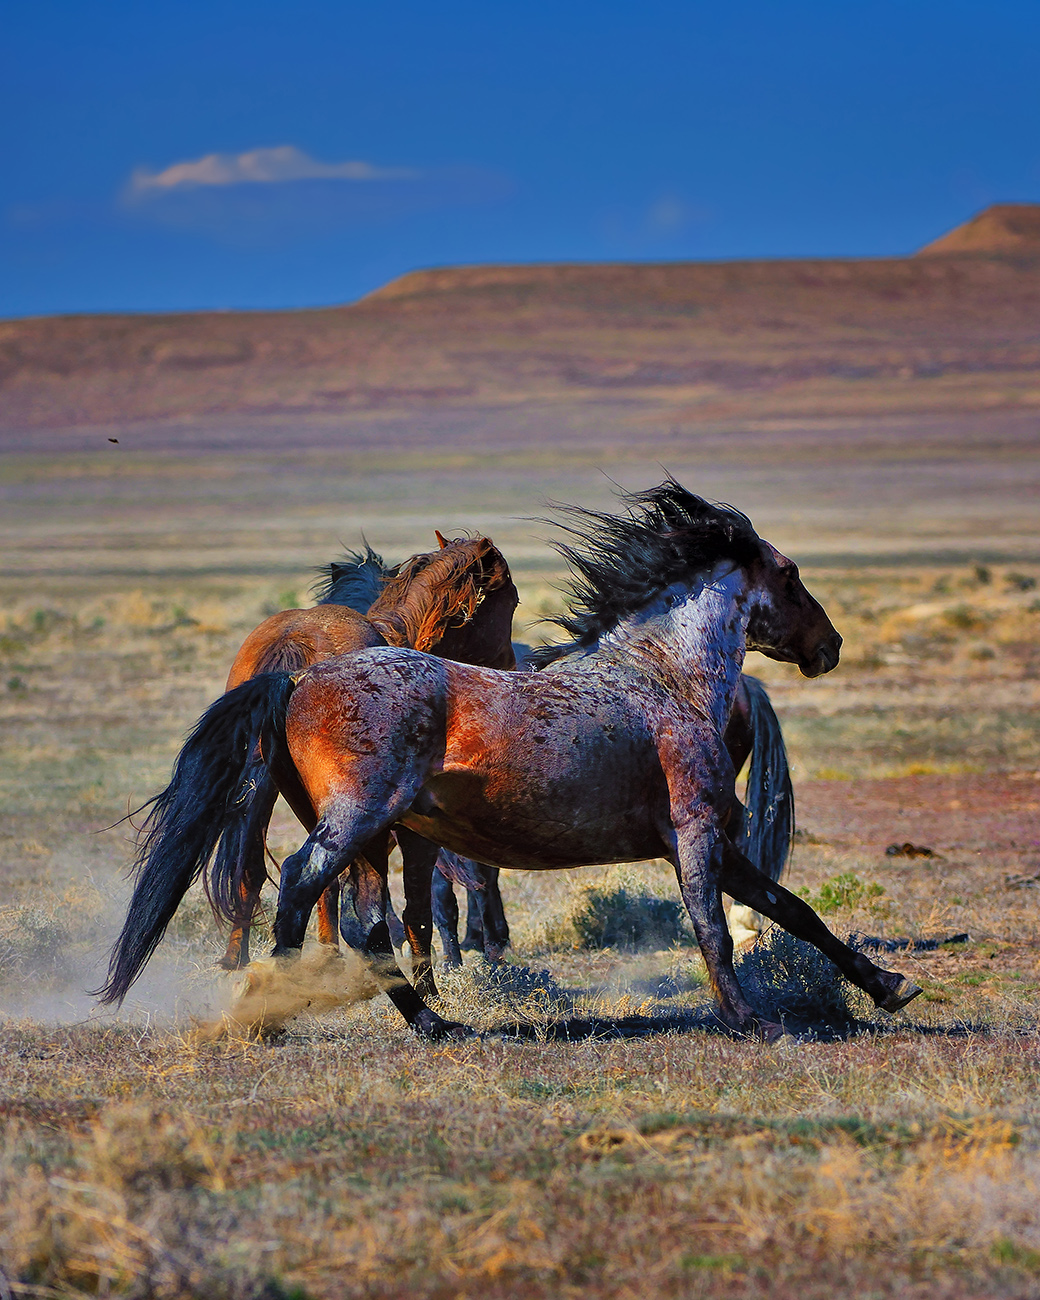 fine art nature photography from the american southwest